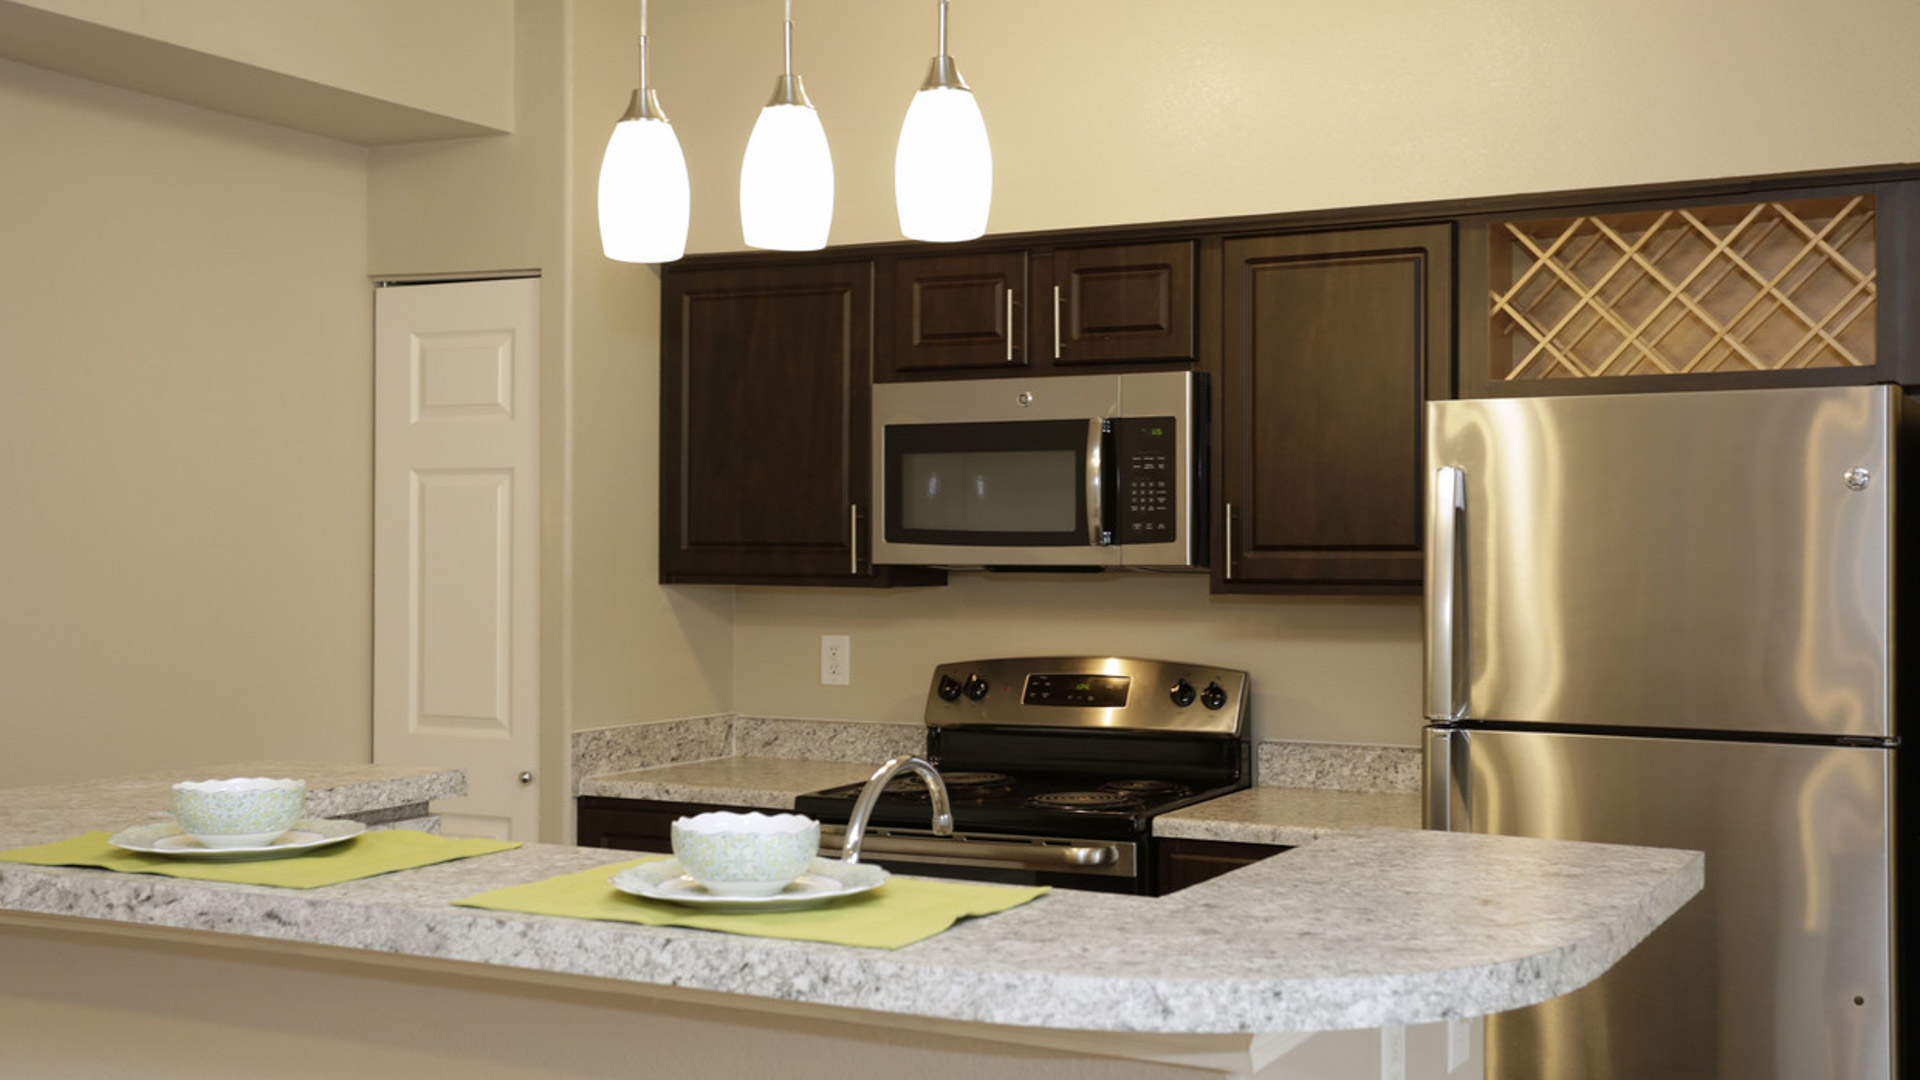 Stainless Steel Appliances at Springs at Live Oak in Live Oak, TX